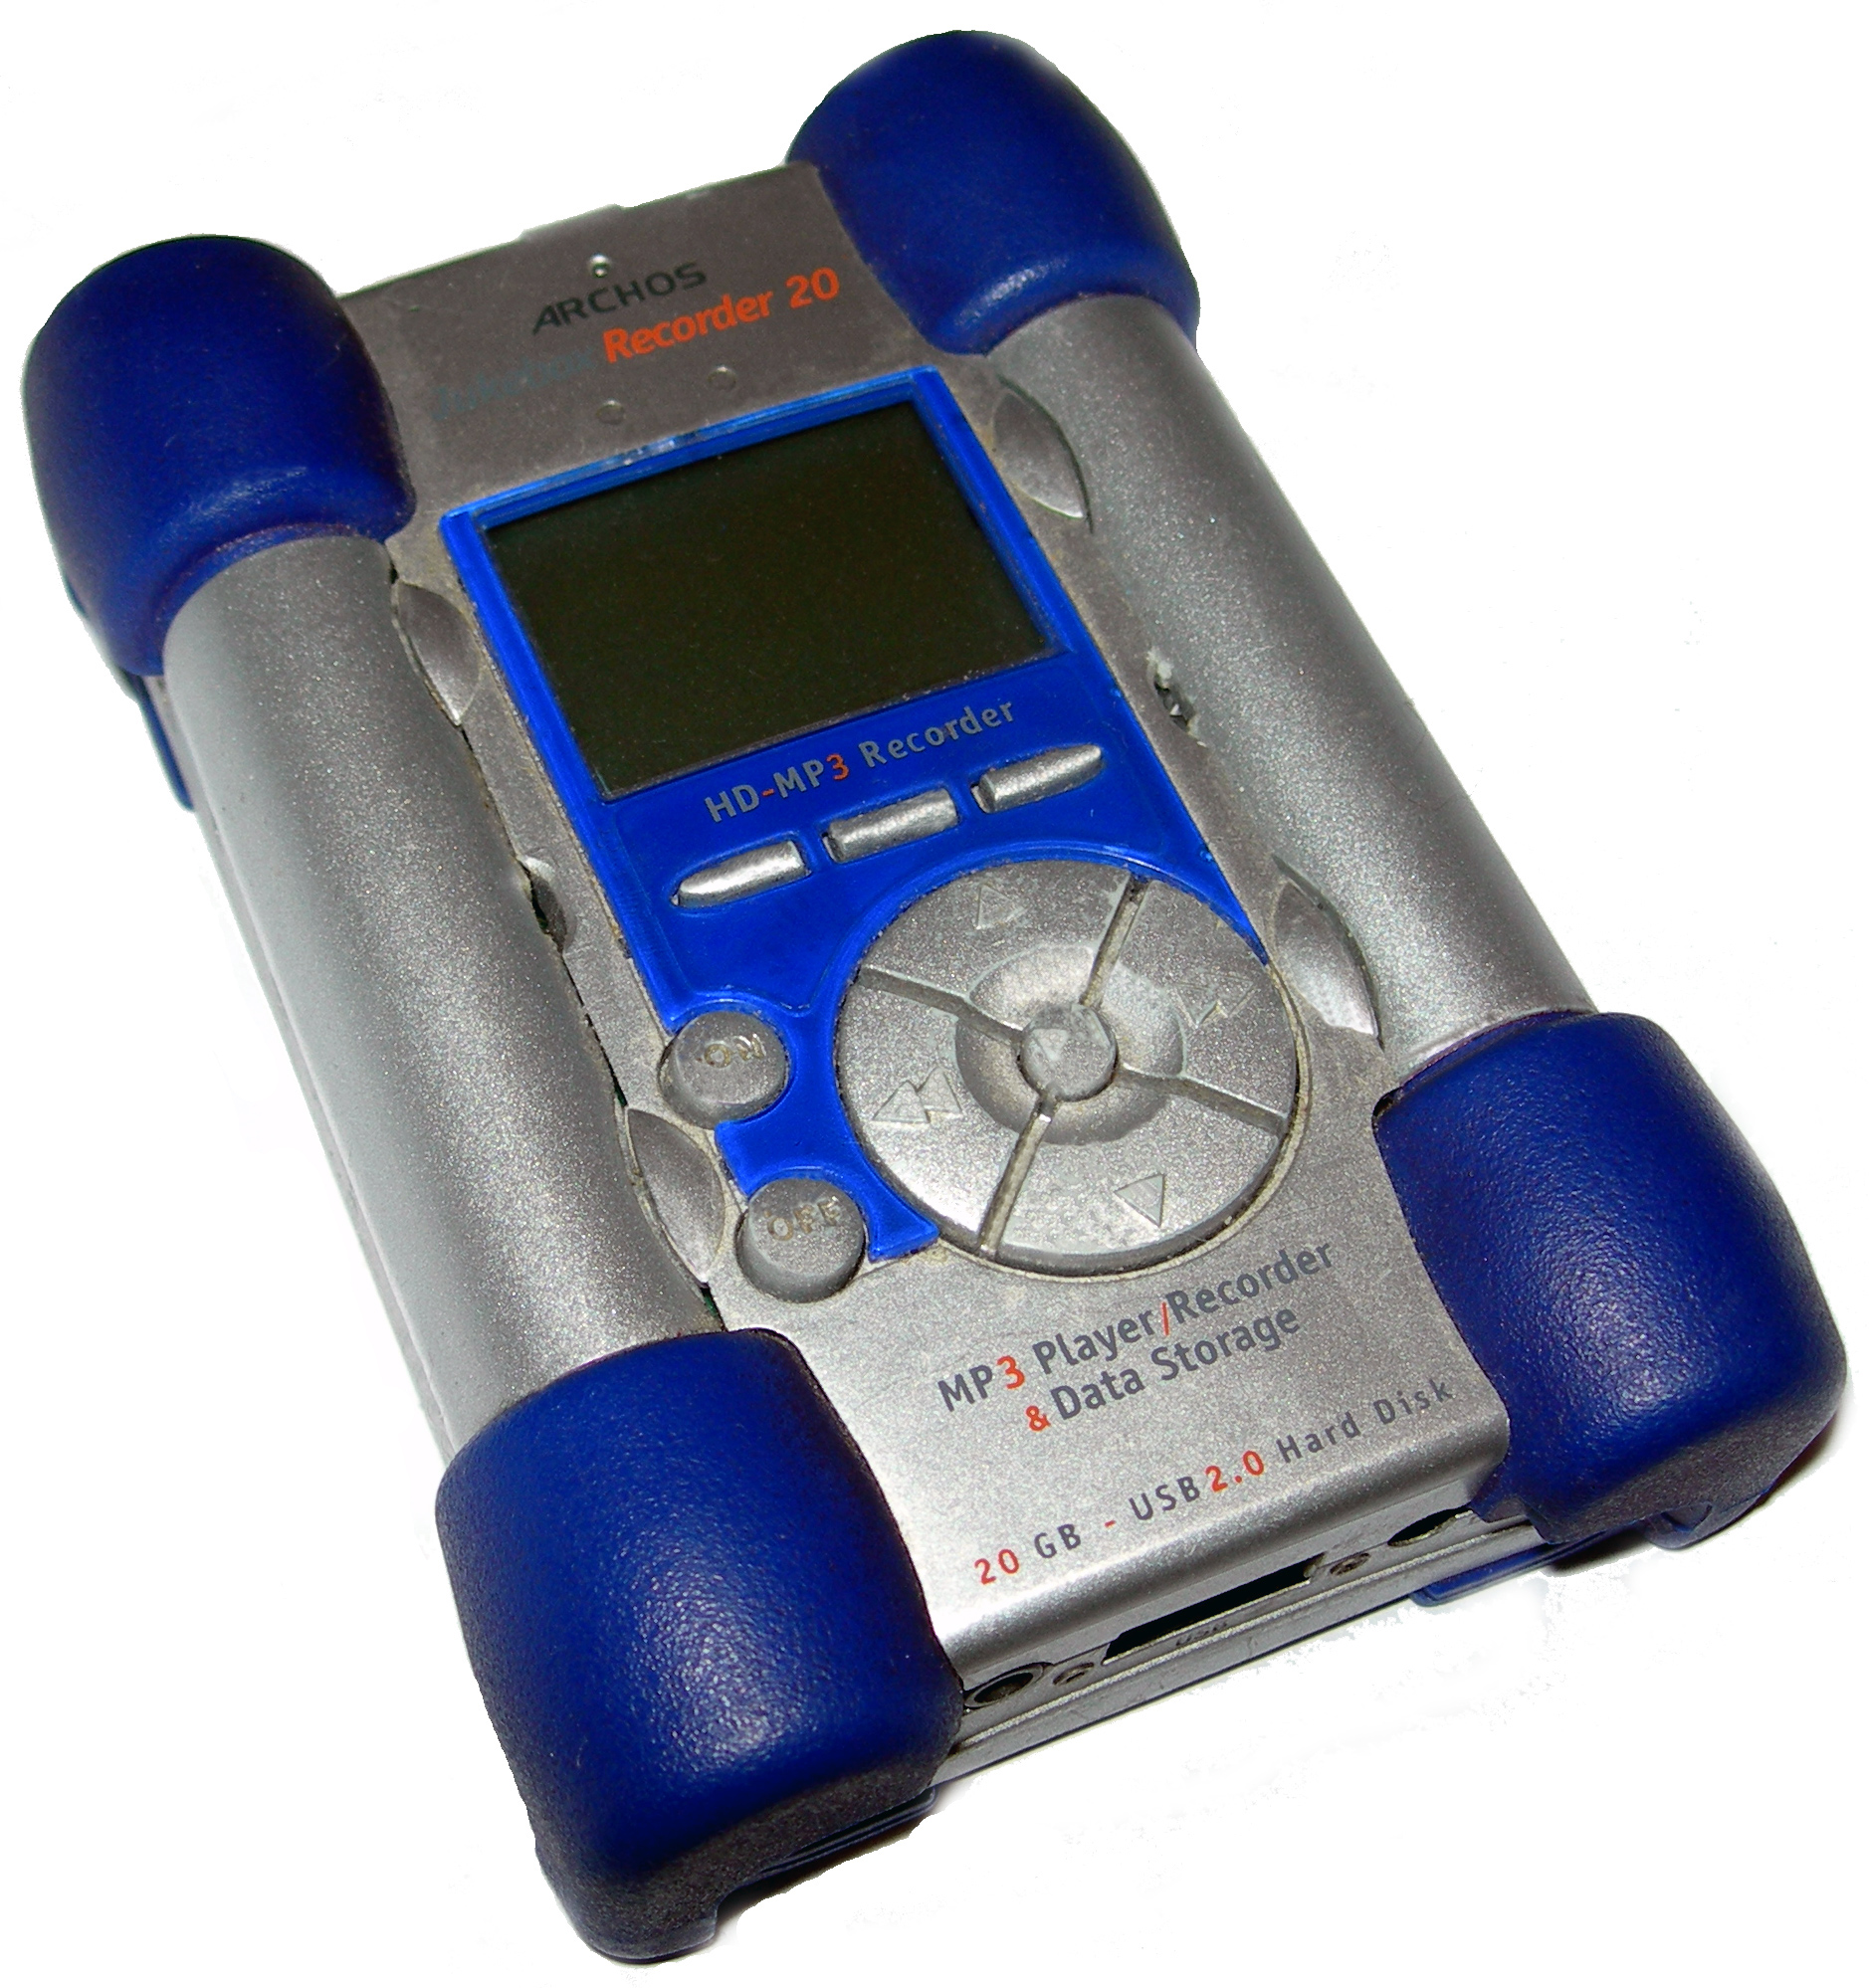 first mp3 player - photo #23